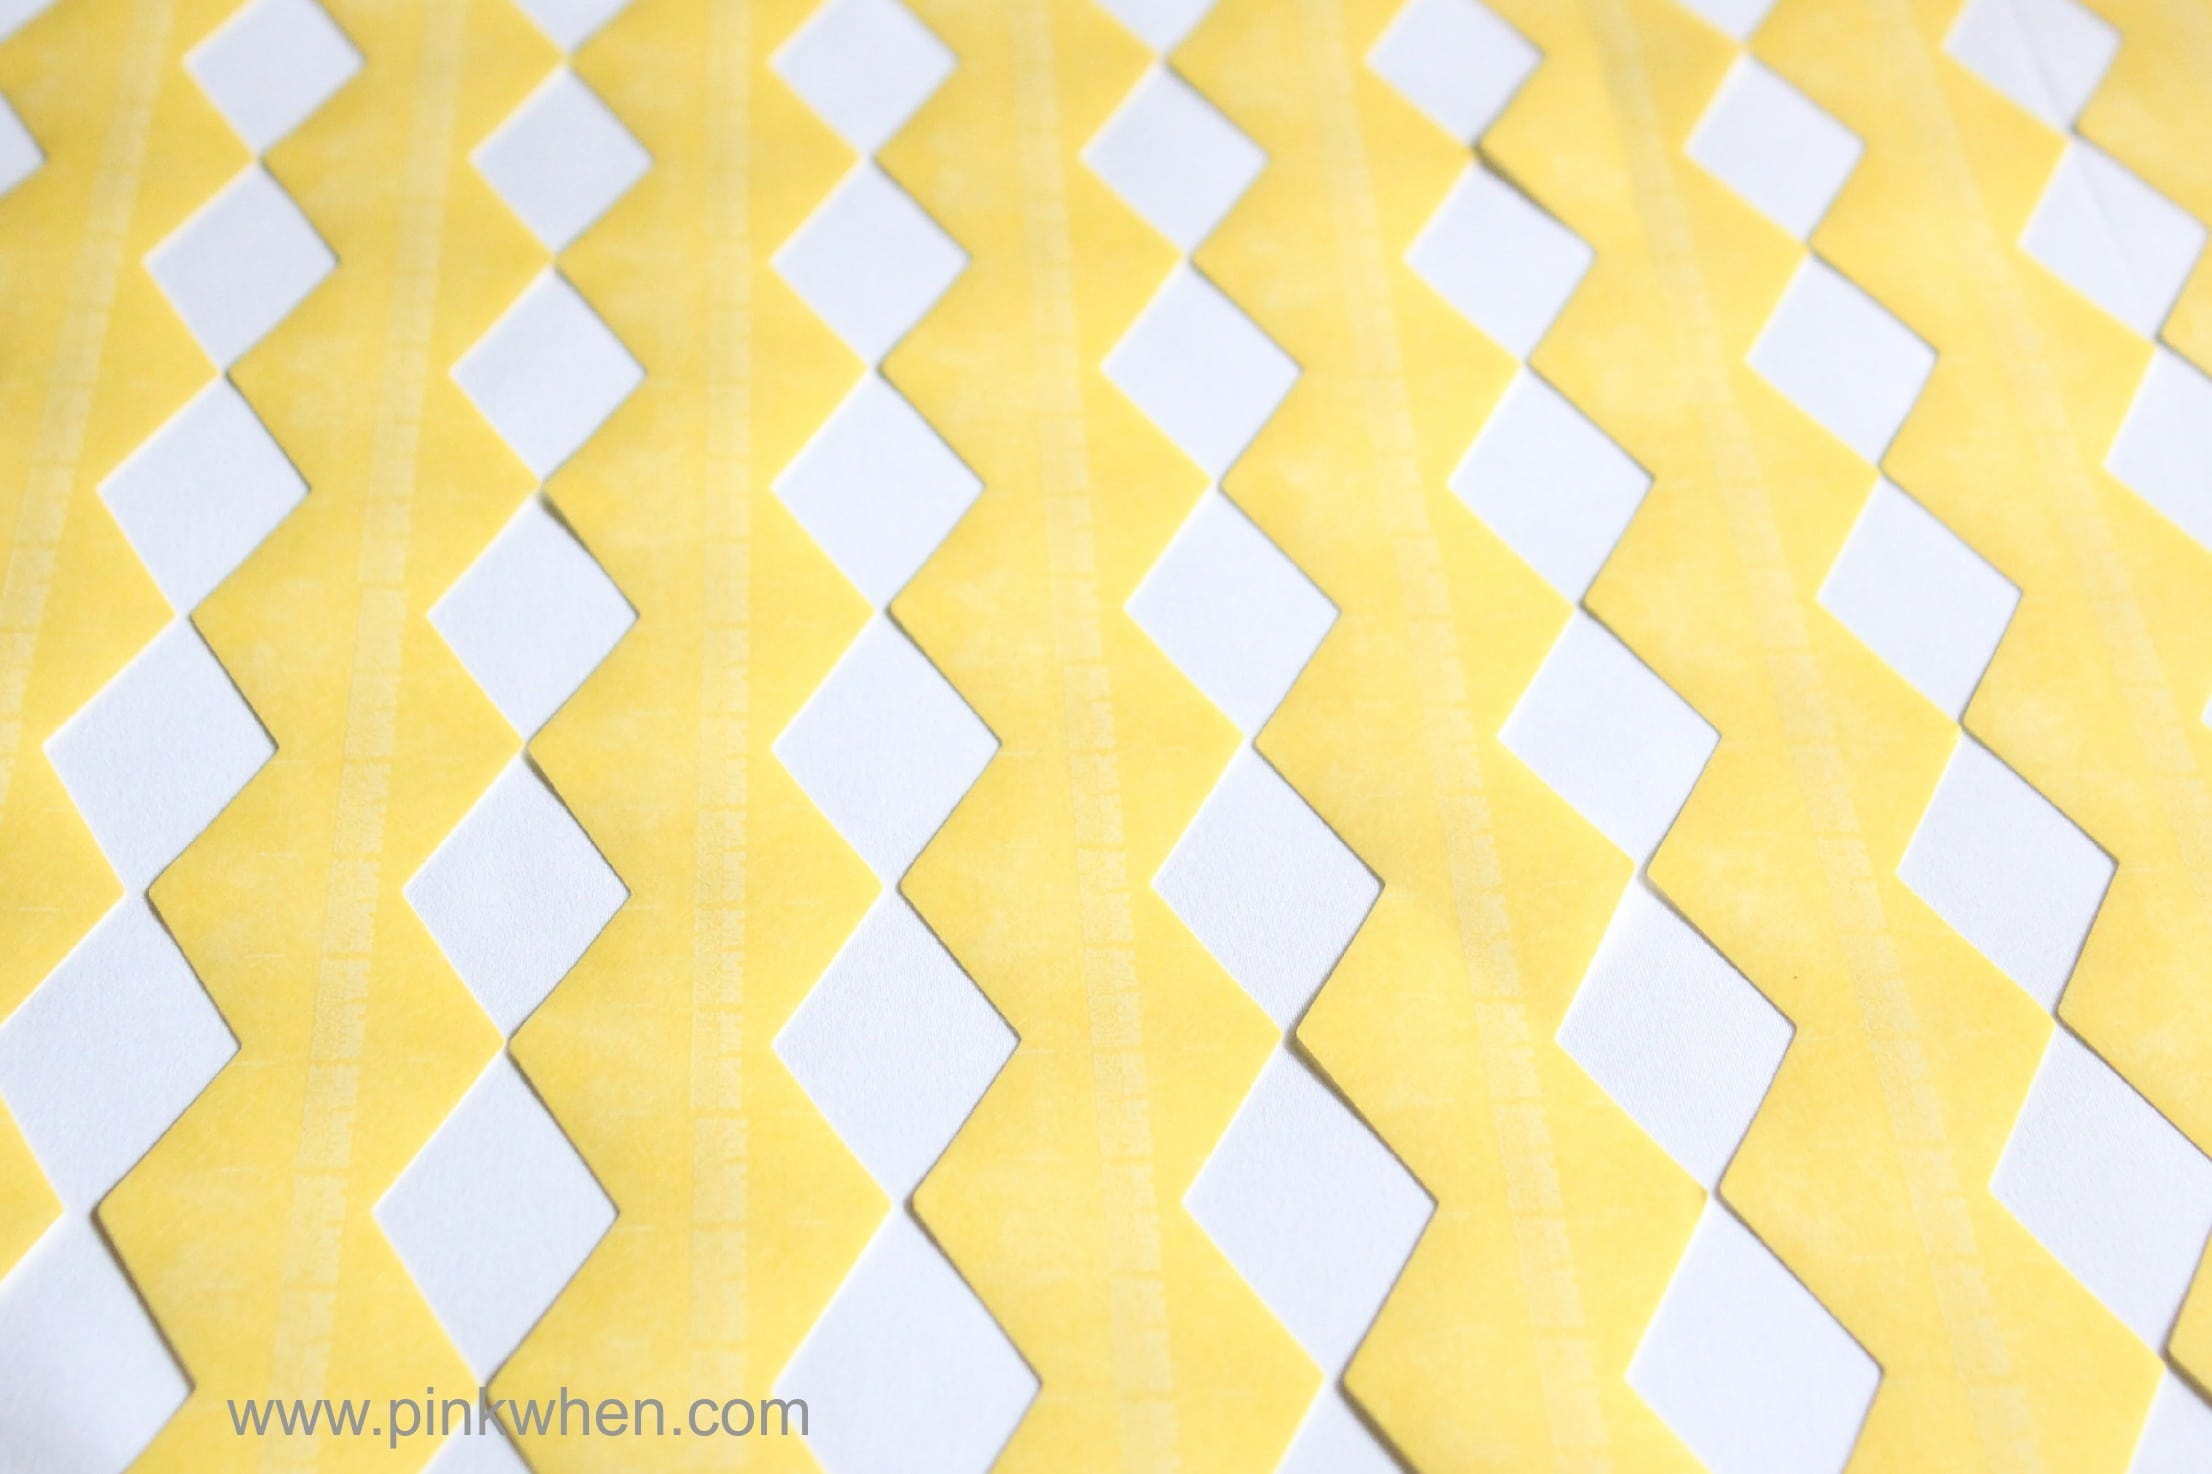 Easy DIY Fabric Painted and Patterned Pillow Case with FrogTape® Shape Tape™ via PinkWhen.com 4